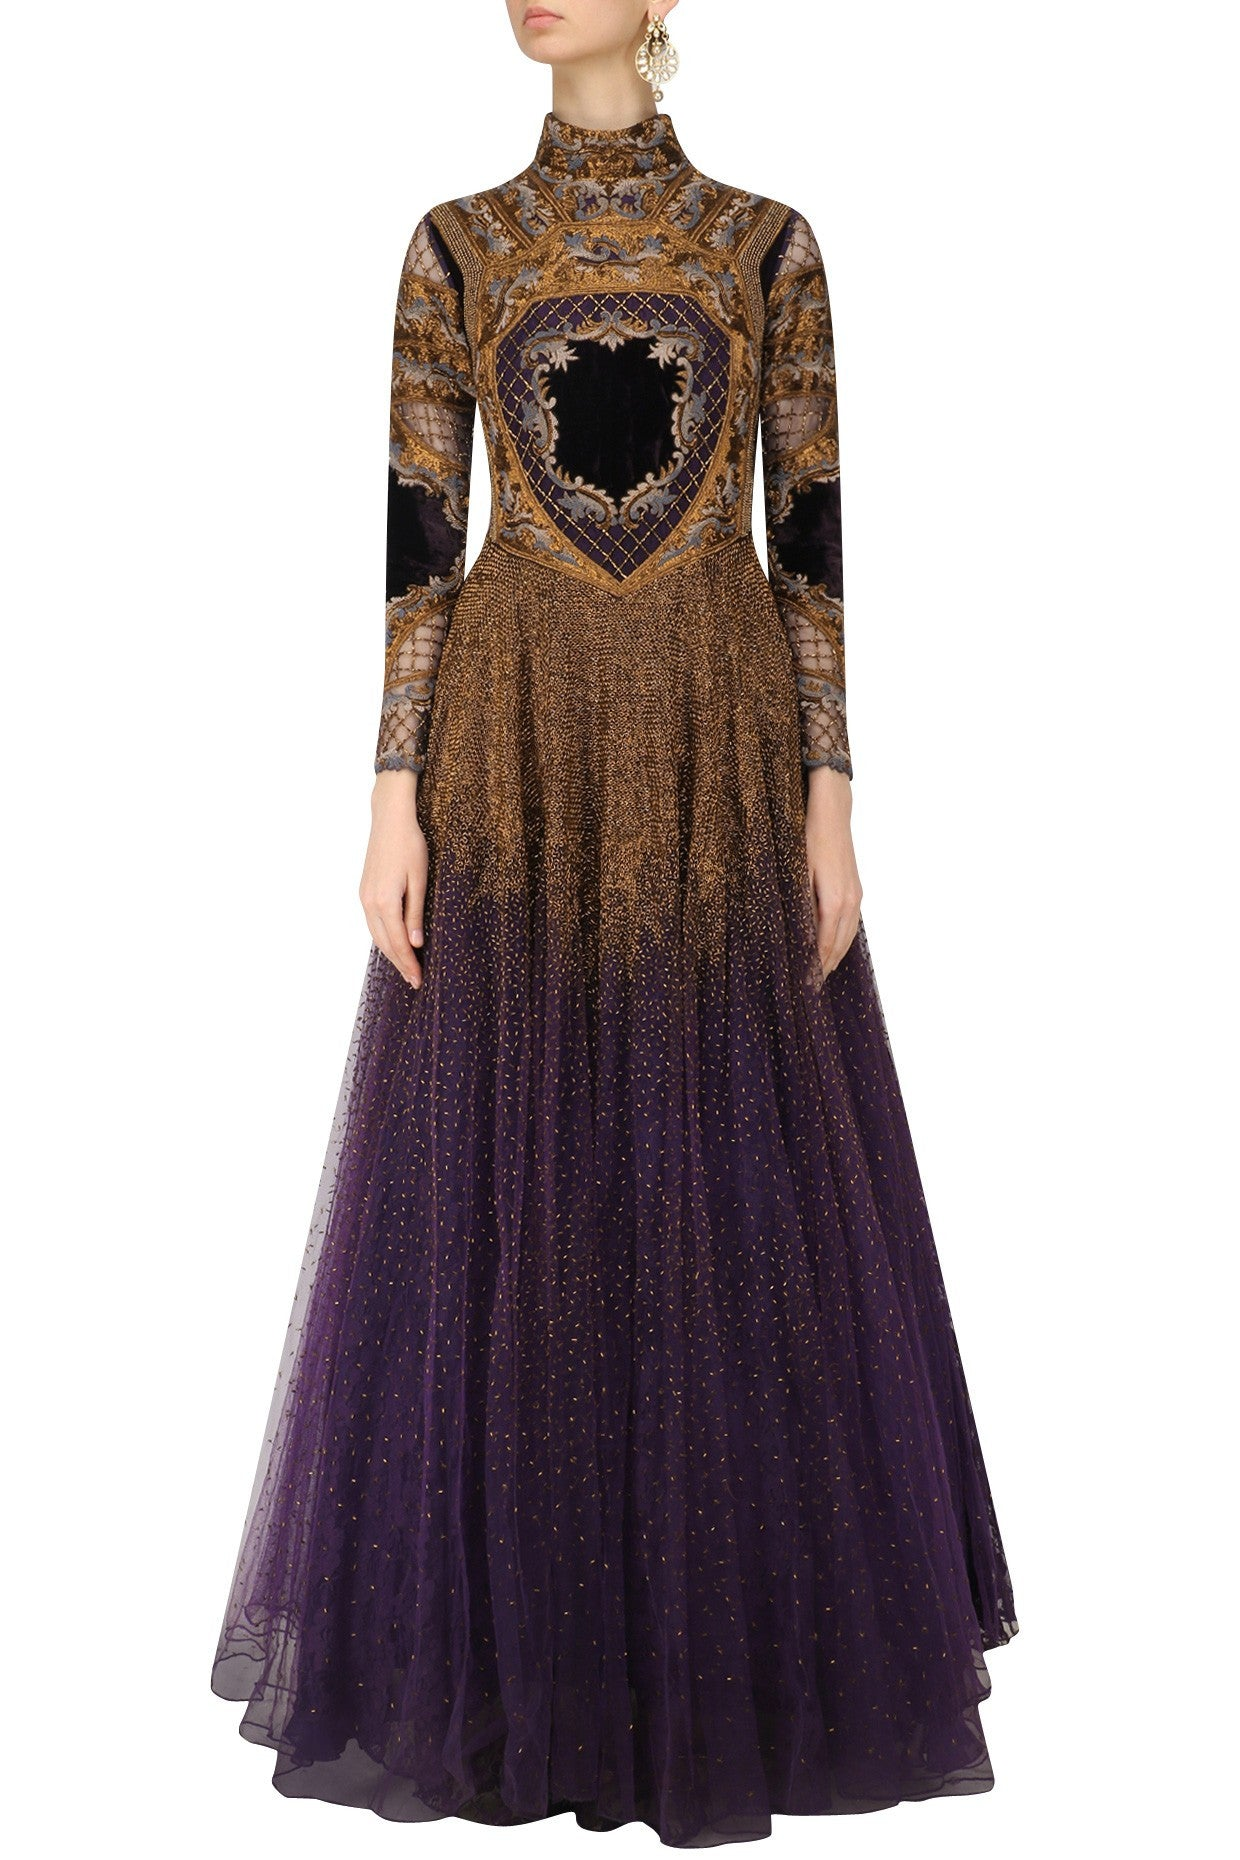 Voilet color Indo Western Gown by Panache Haute Couture